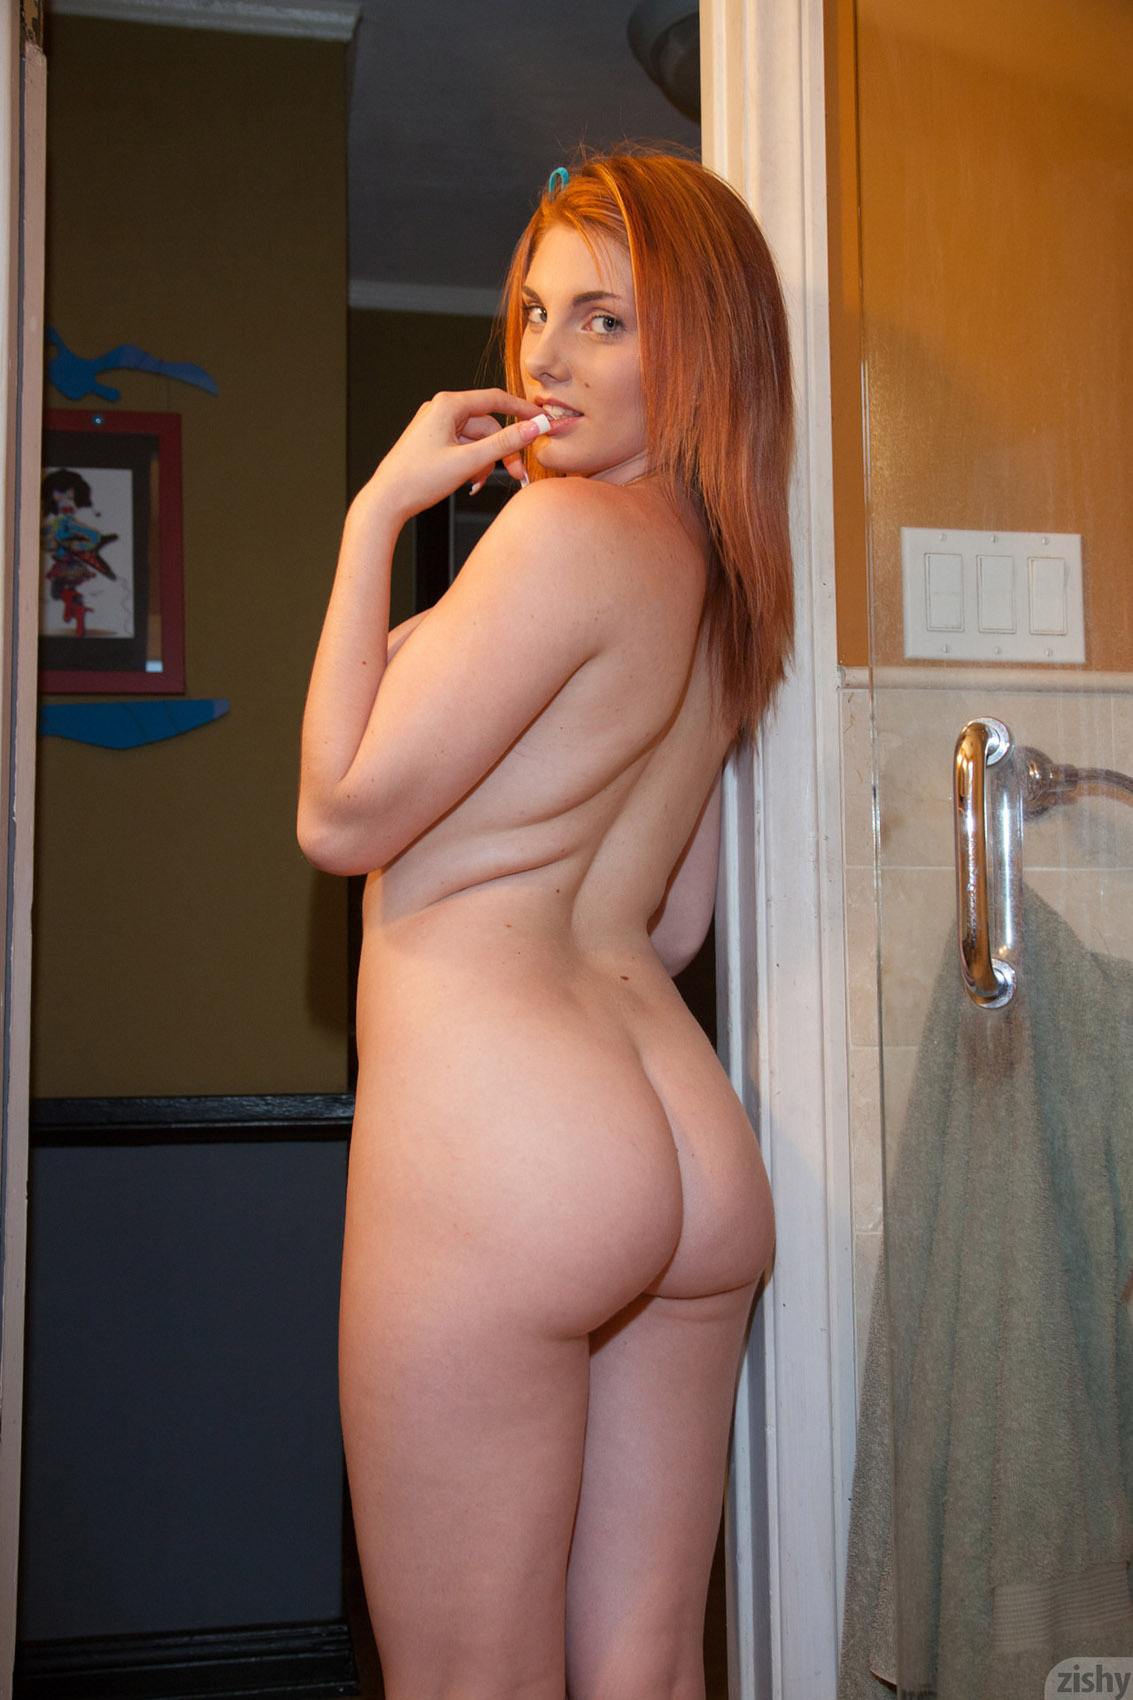 Have hit Nude pregnant redheads in the shower join